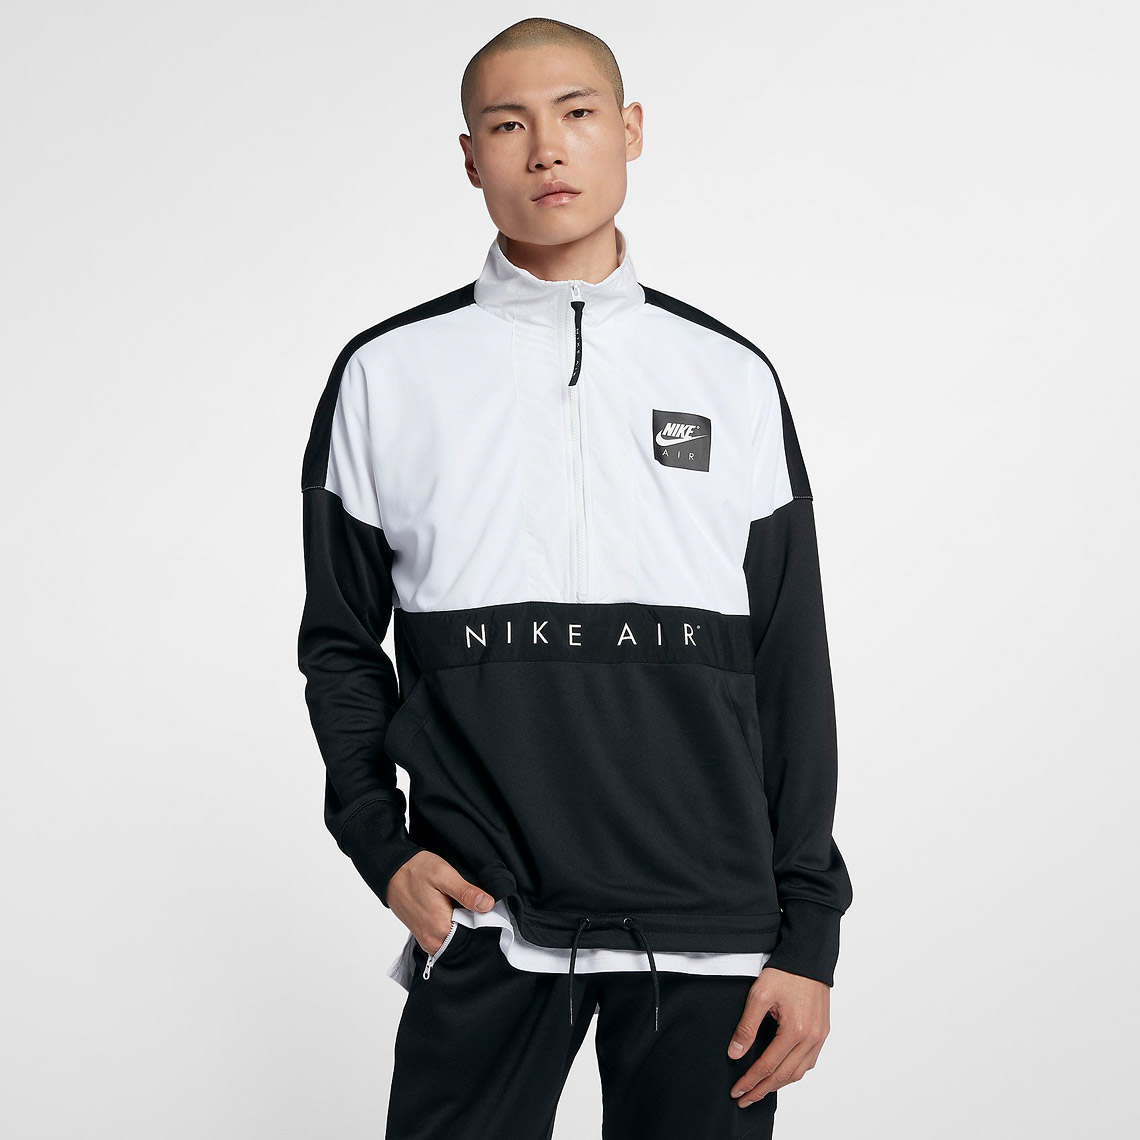 air-mens-half-zip-top-WyTA0nKp